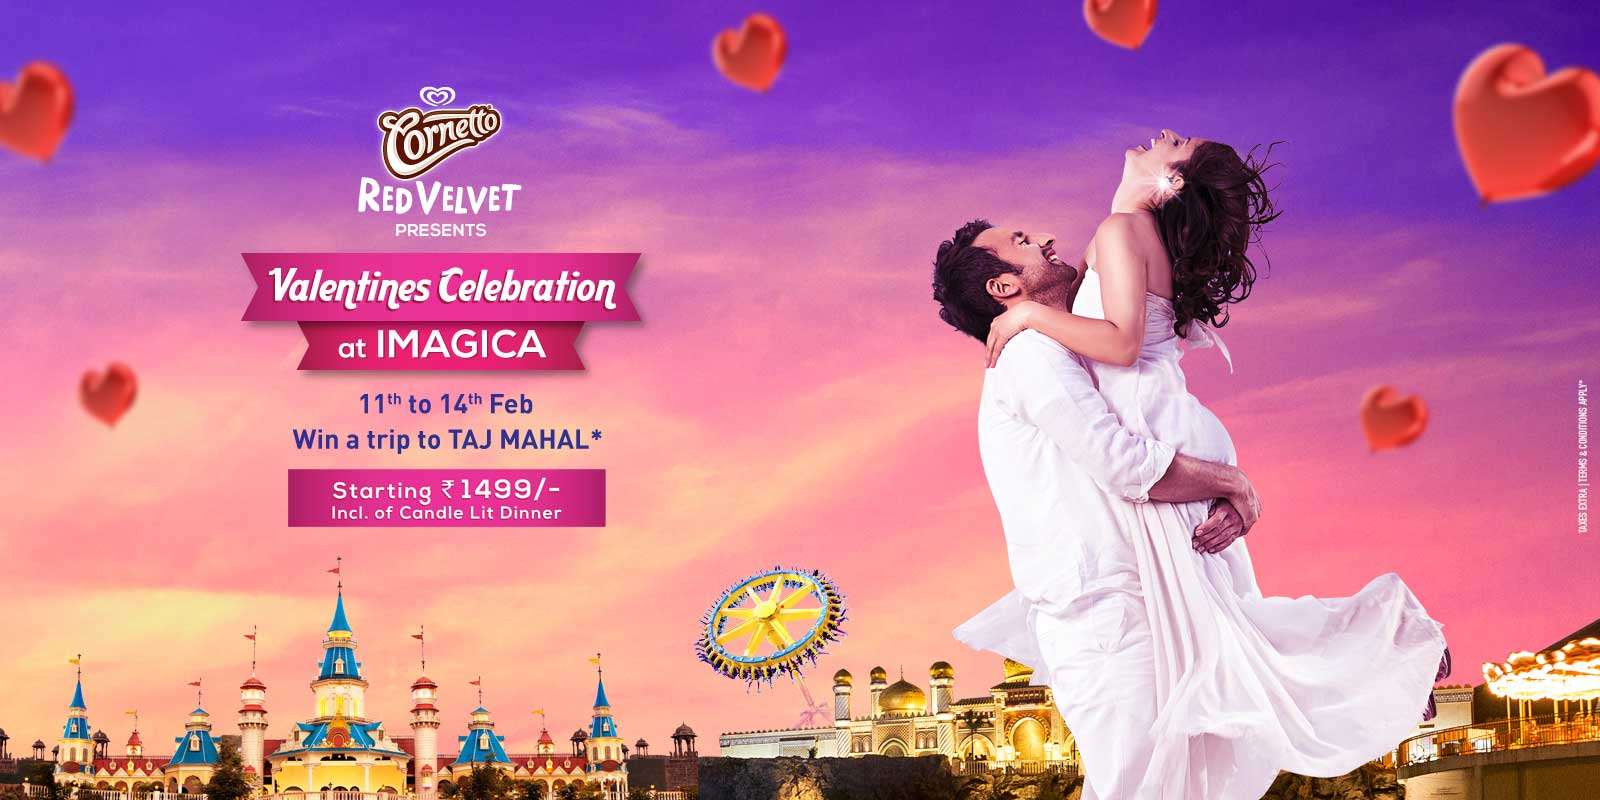 Things To Do On Valentine's Day | Valentine's Day Ideas | Imagica ...